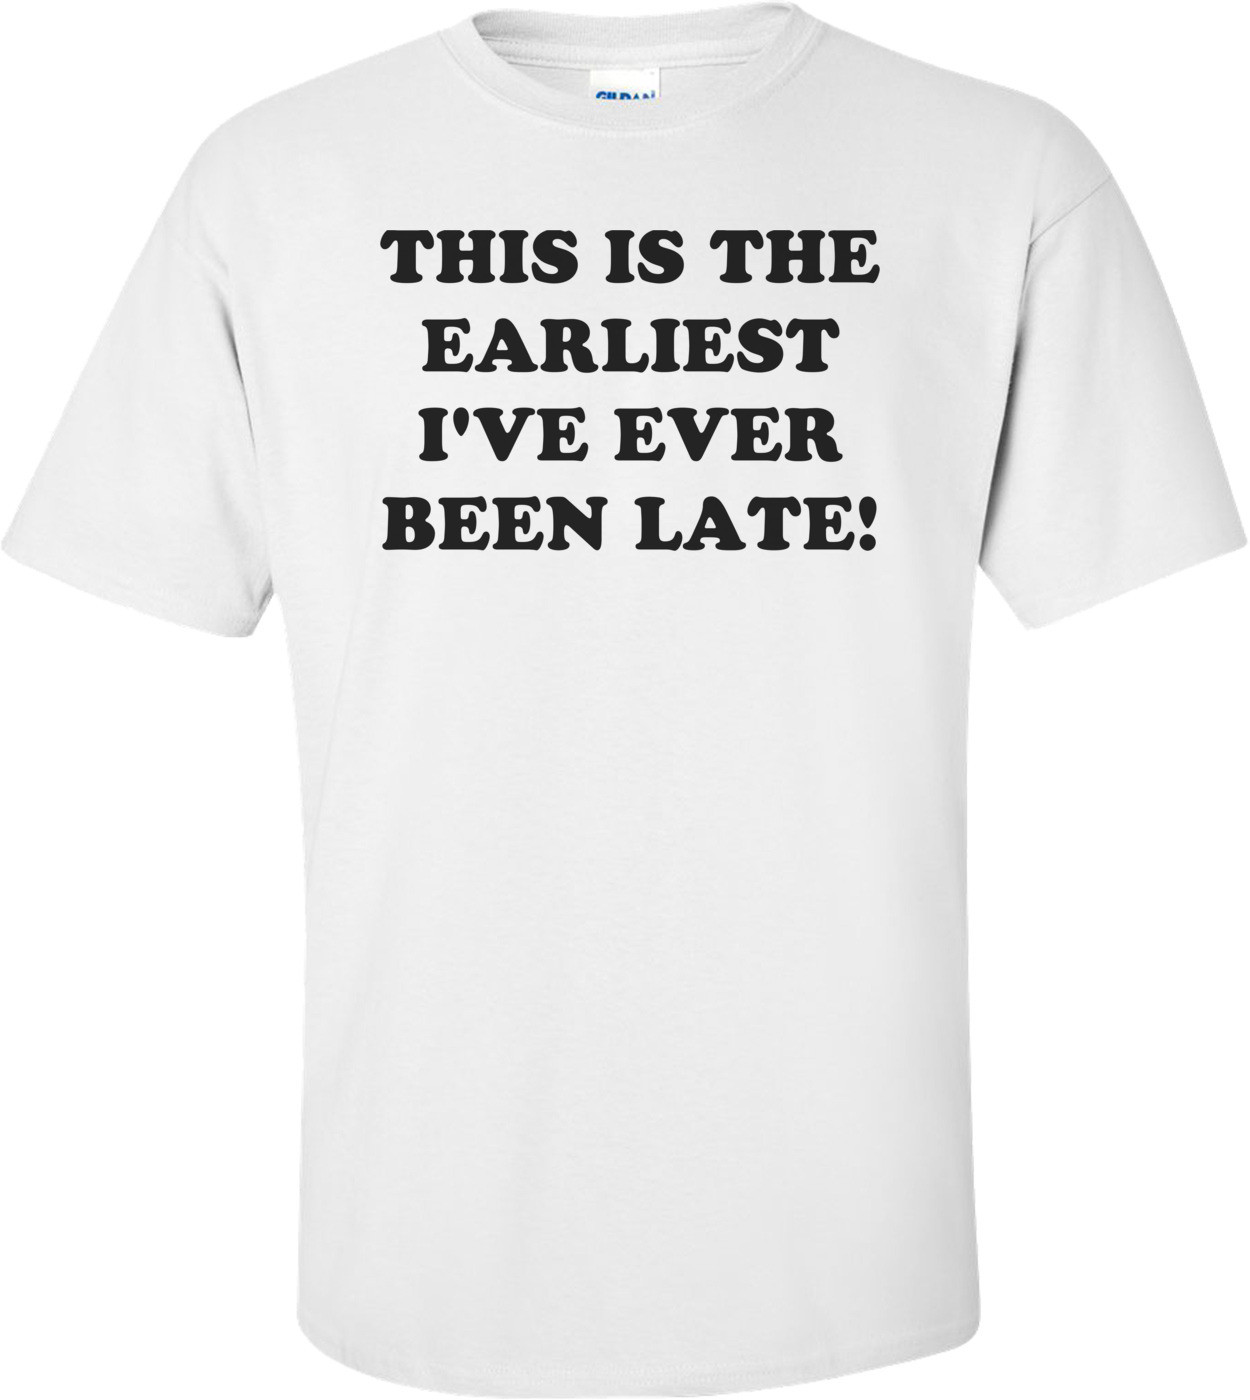 THIS IS THE EARLIEST I'VE EVER BEEN LATE! Shirt